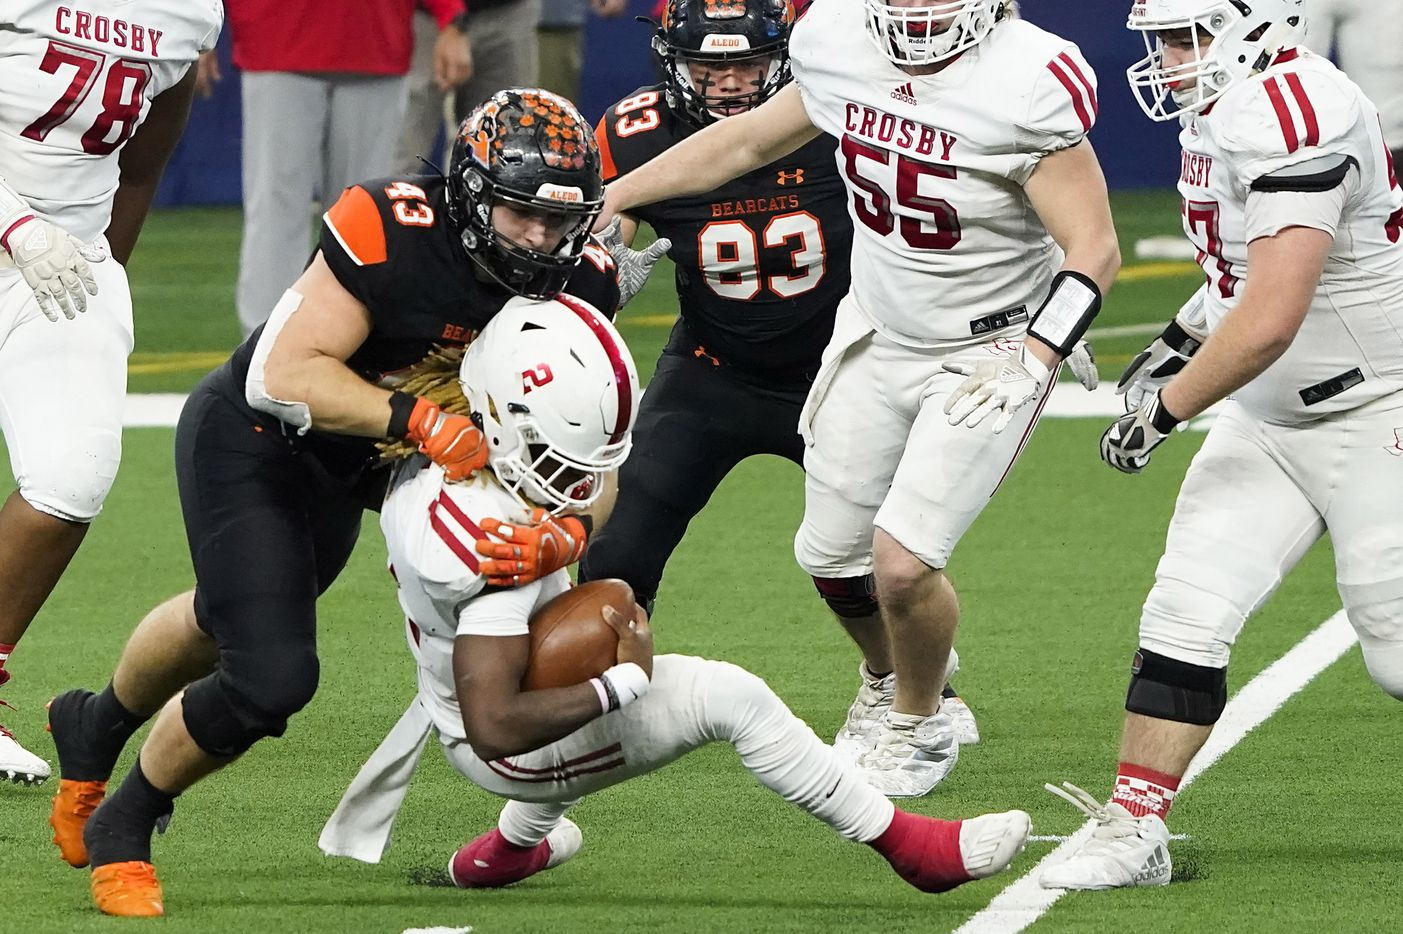 Crosby Deniquez Dunn (2) is sacked by Aledo defensive lineman Kyle Thompson (43) during the first half of the Class 5A Division II state football championship game at AT&T Stadium on Friday, Jan. 15, 2021, in Arlington. (Smiley N. Pool/The Dallas Morning News)